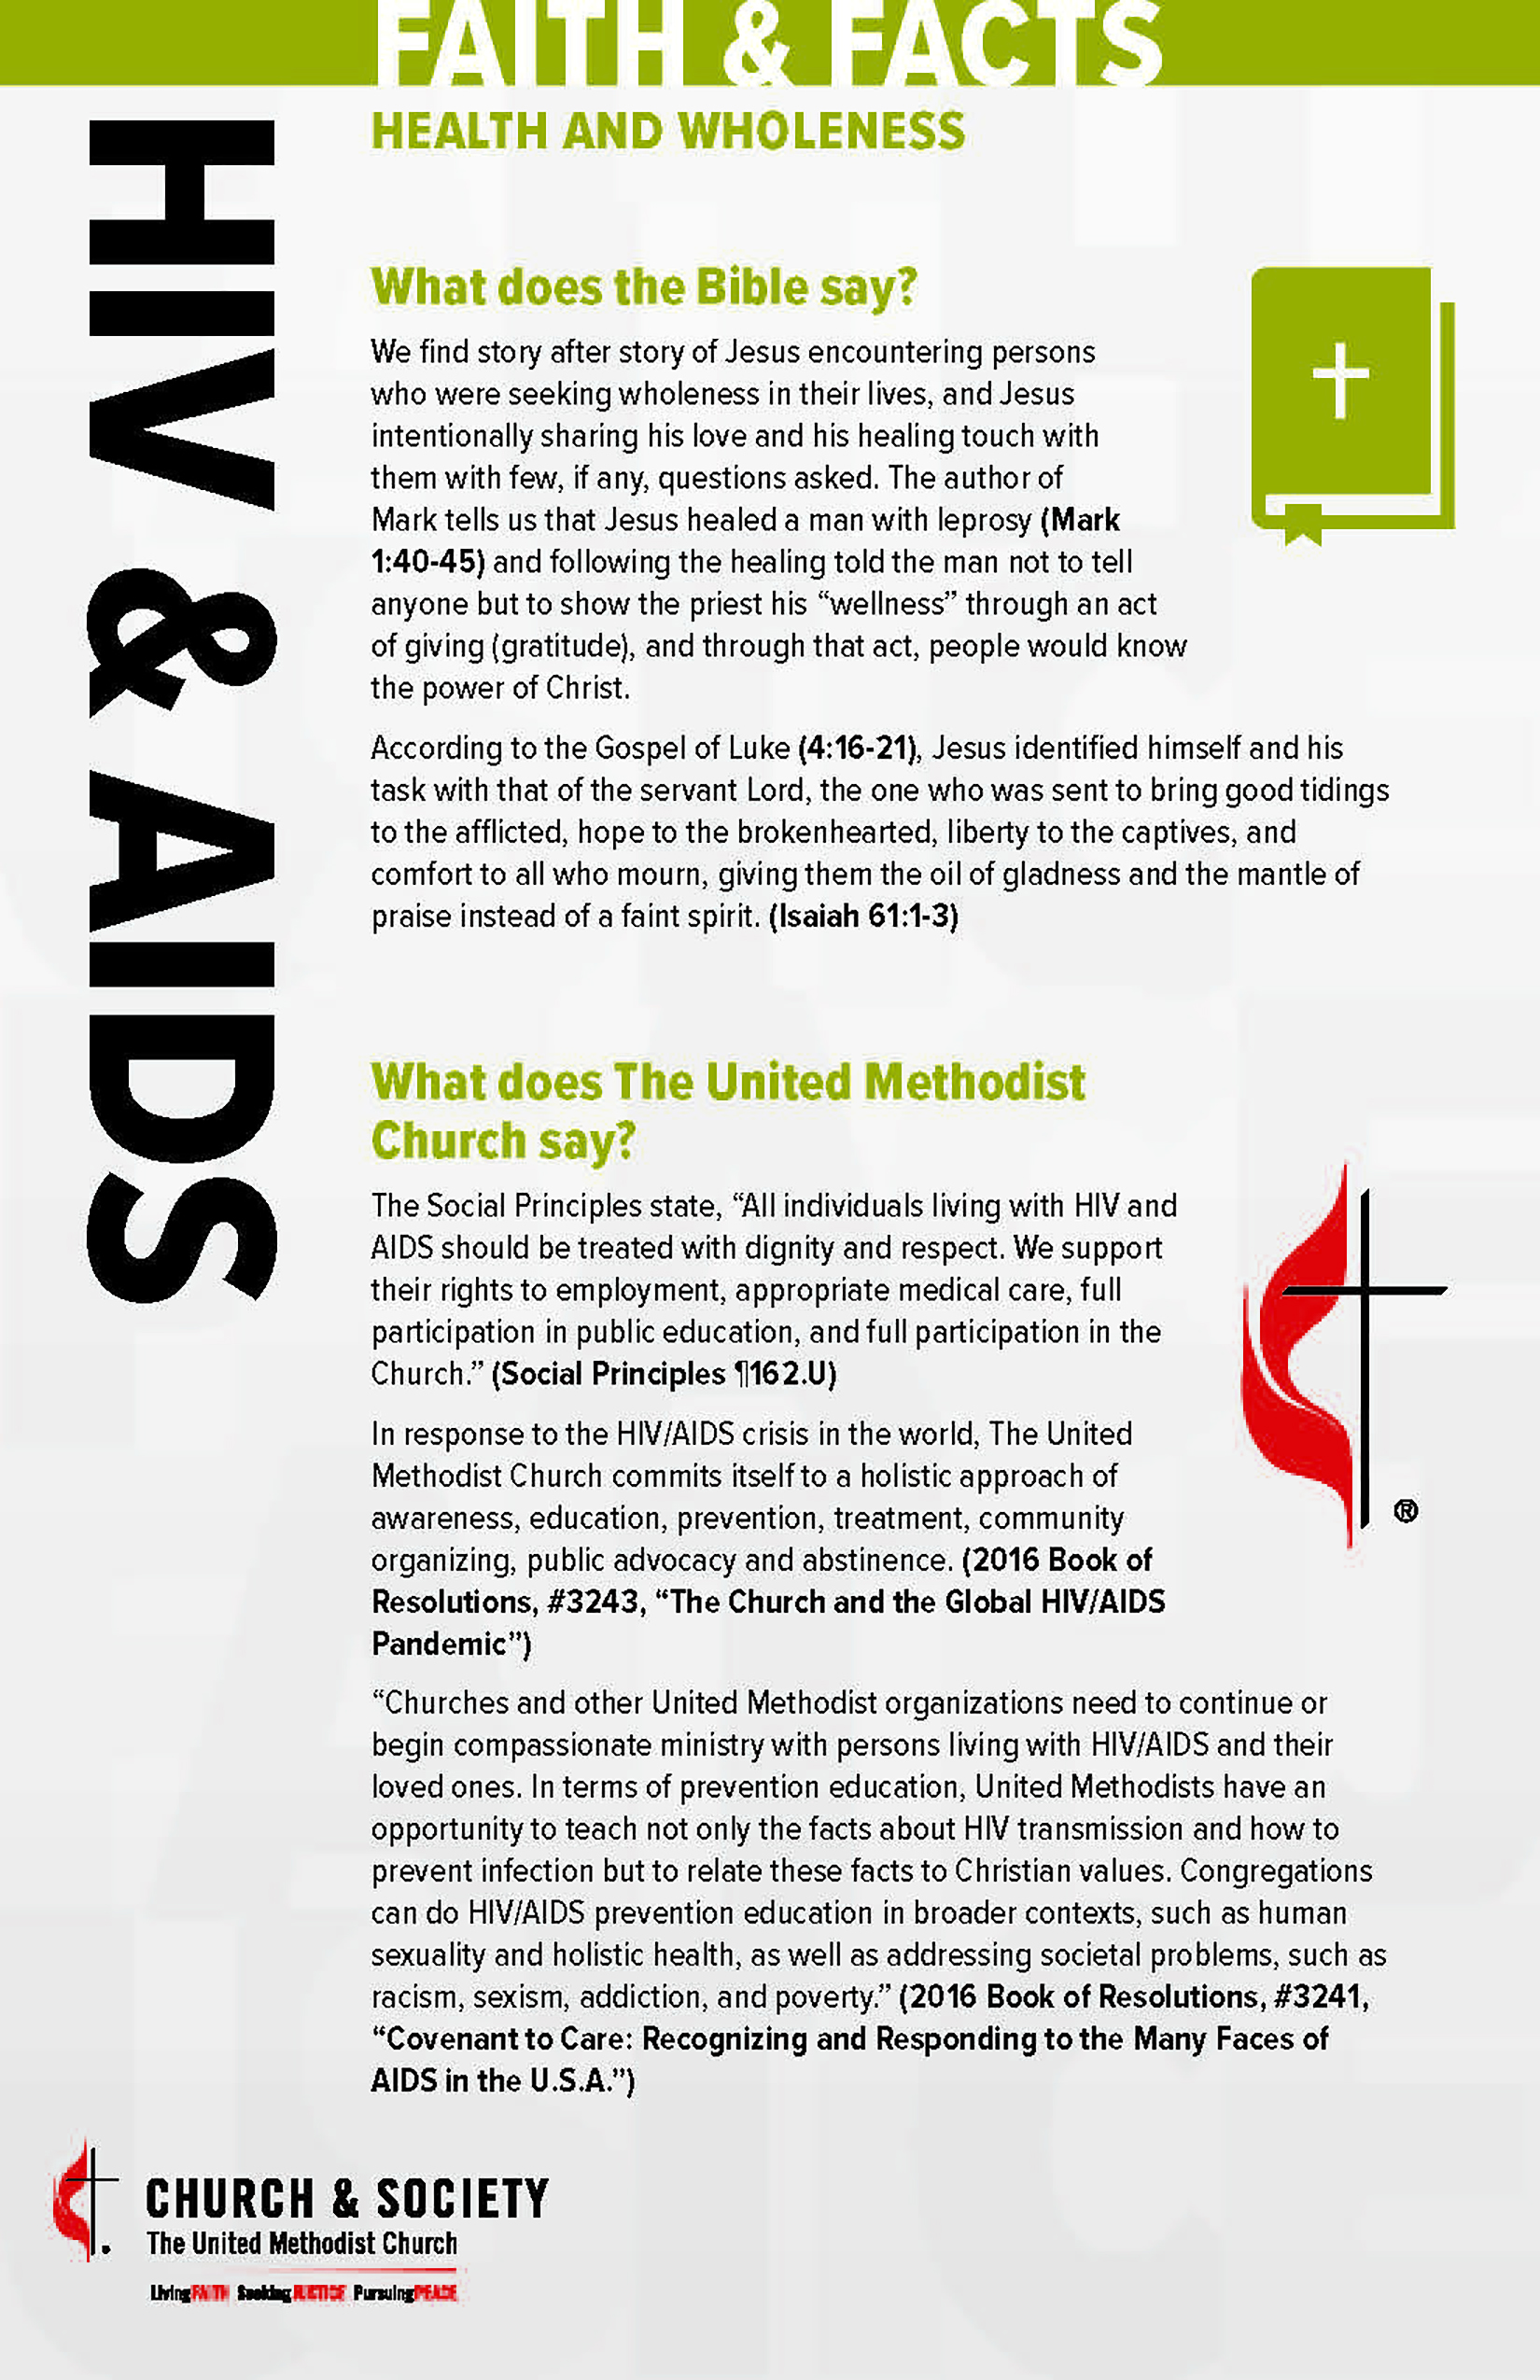 Faith and Facts Card — HIV and AIDS_Side_1